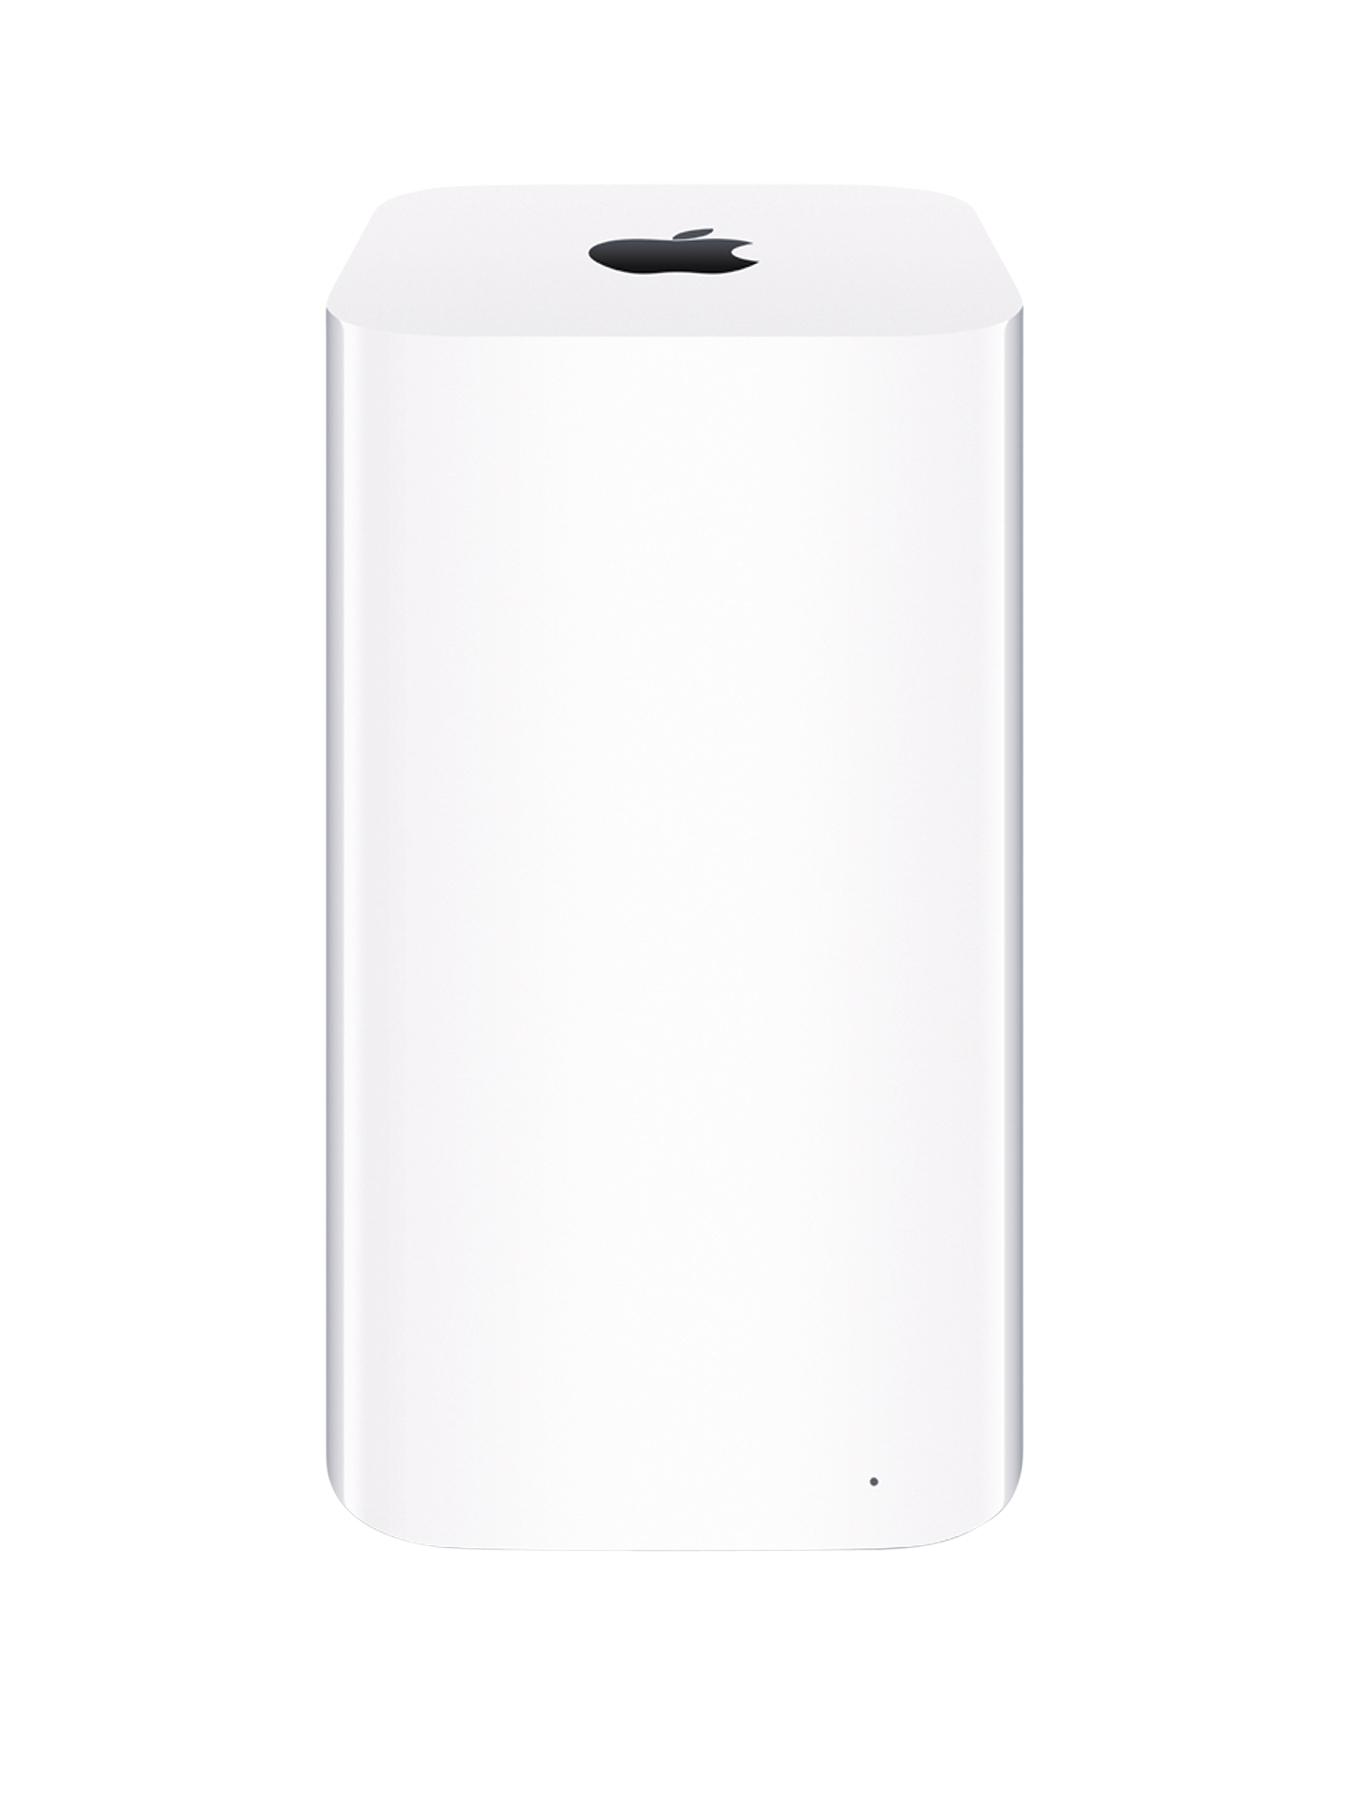 Apple ME177B/A AirPort Time Capsule 802.11AC 2TB - White